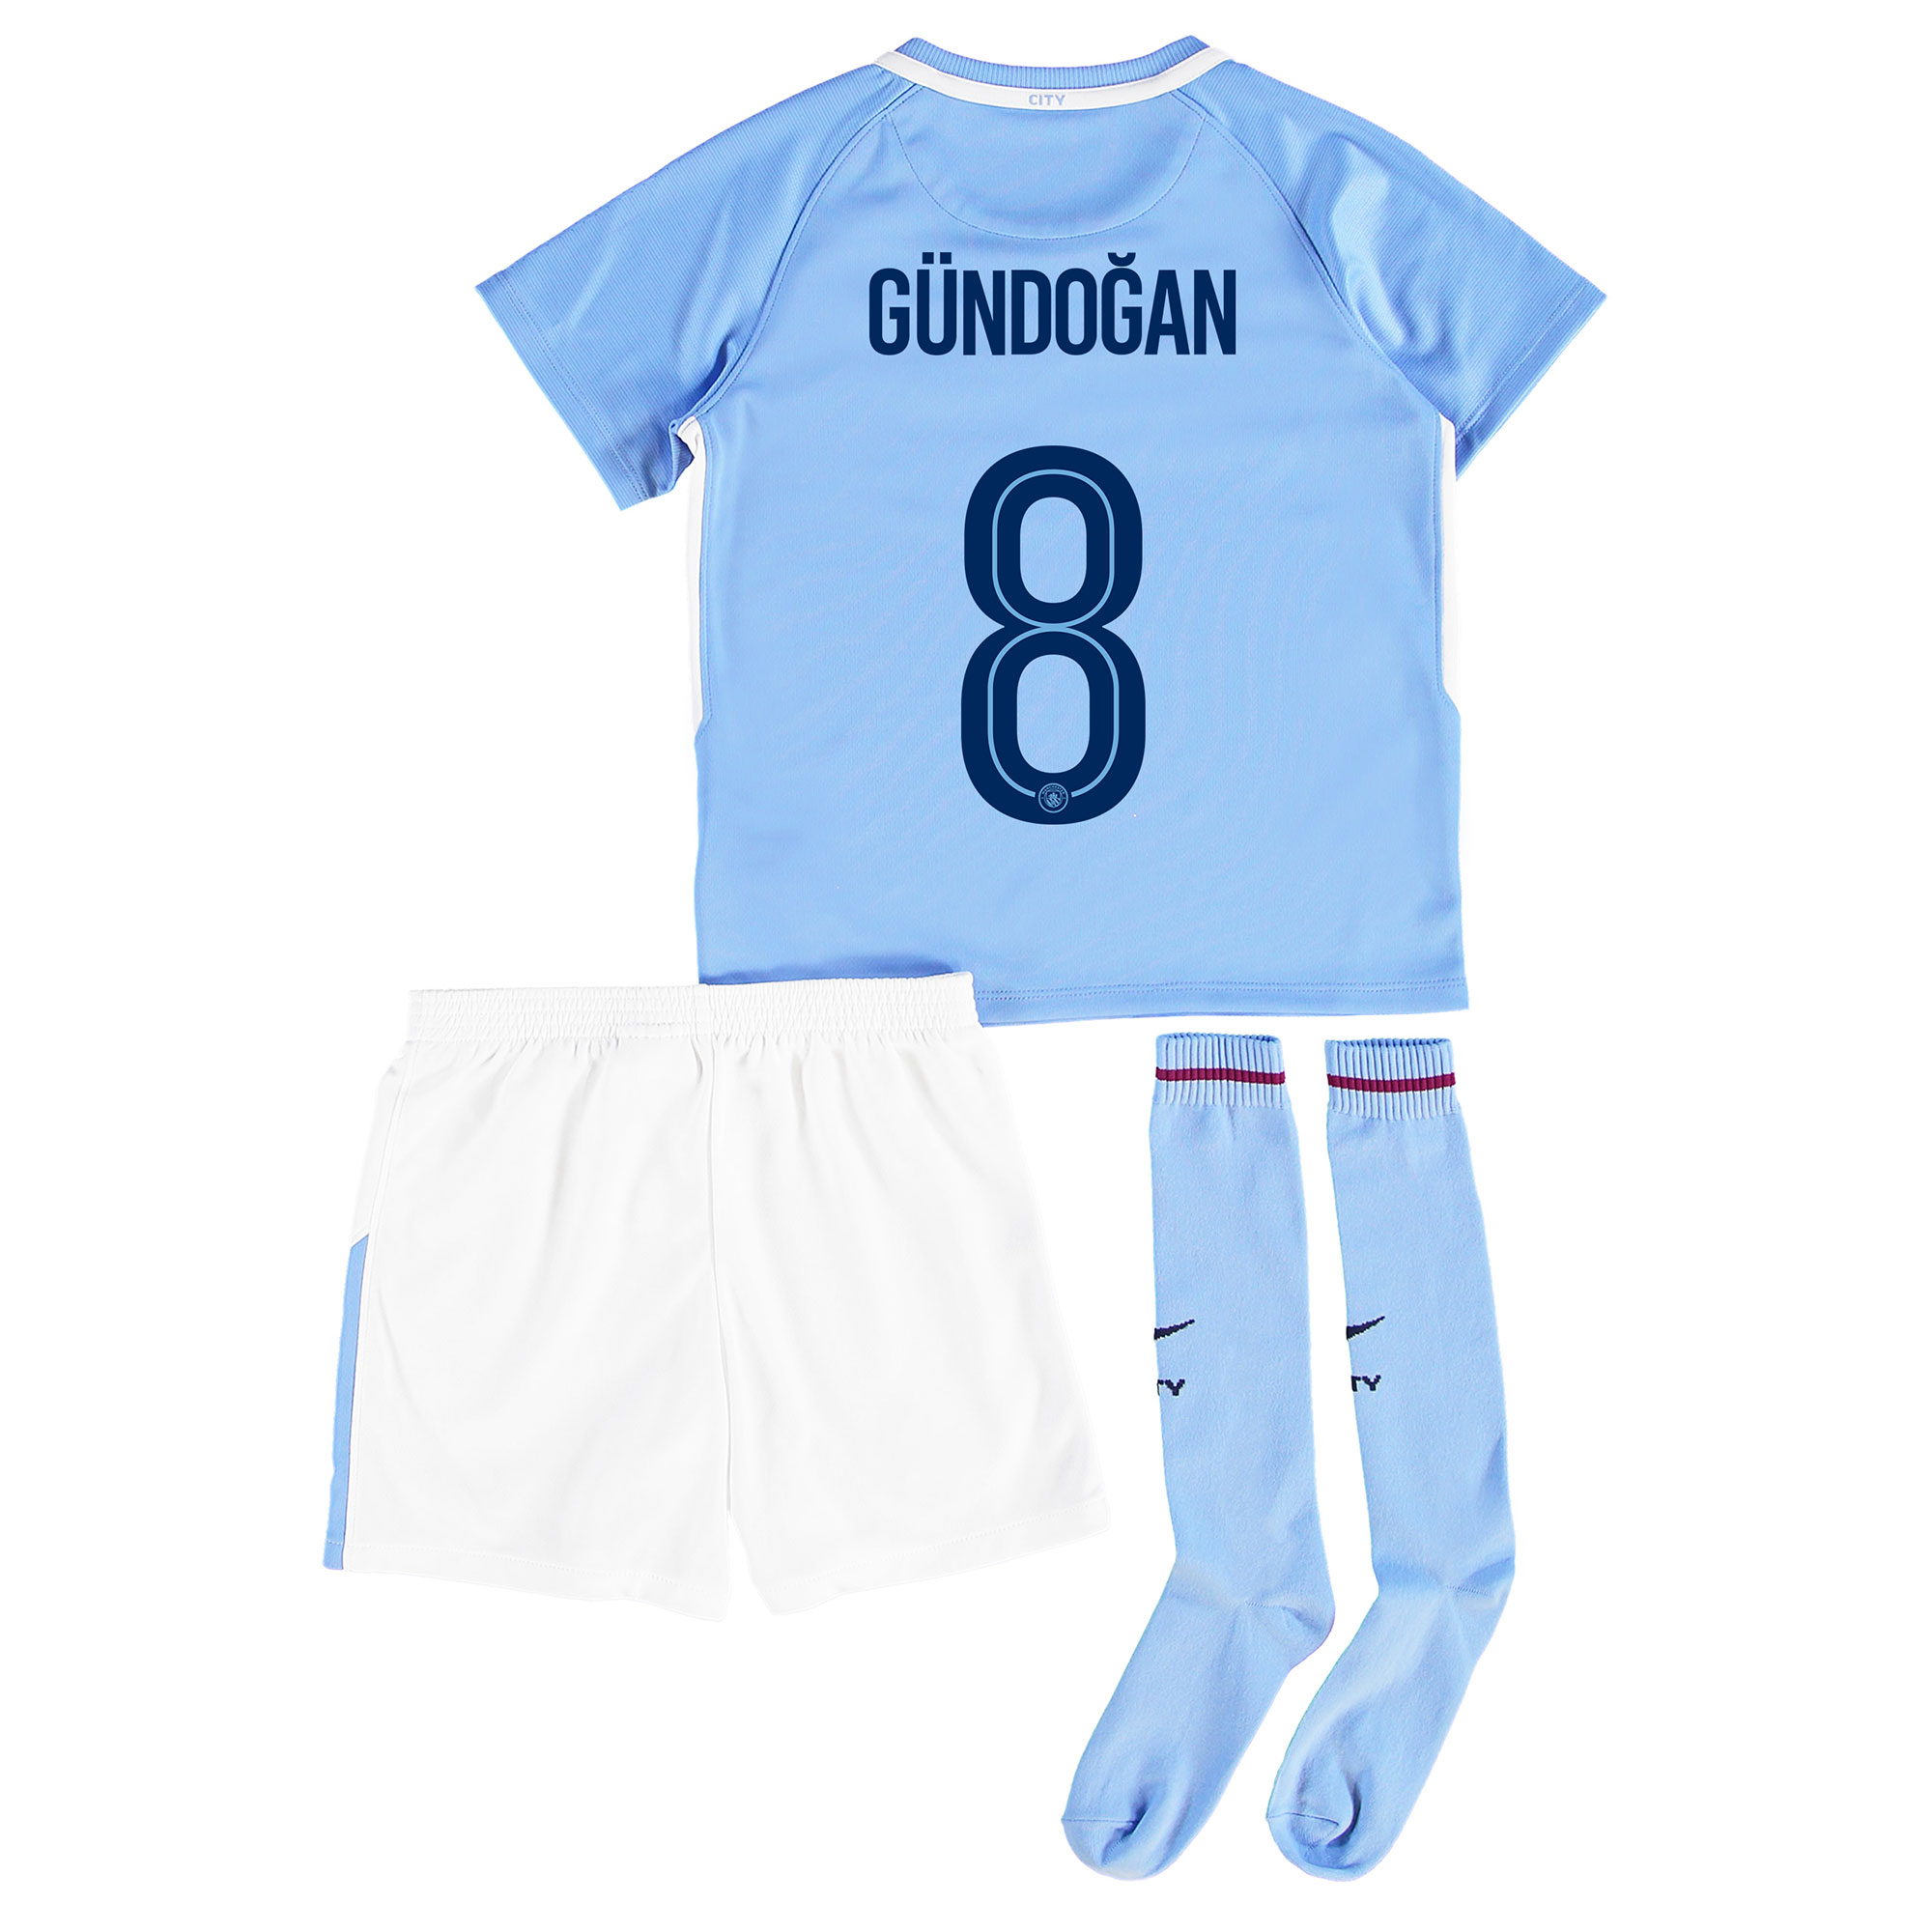 Manchester City Home Stadium Cup Kit 2017-18 - Little Kids with G??ndog